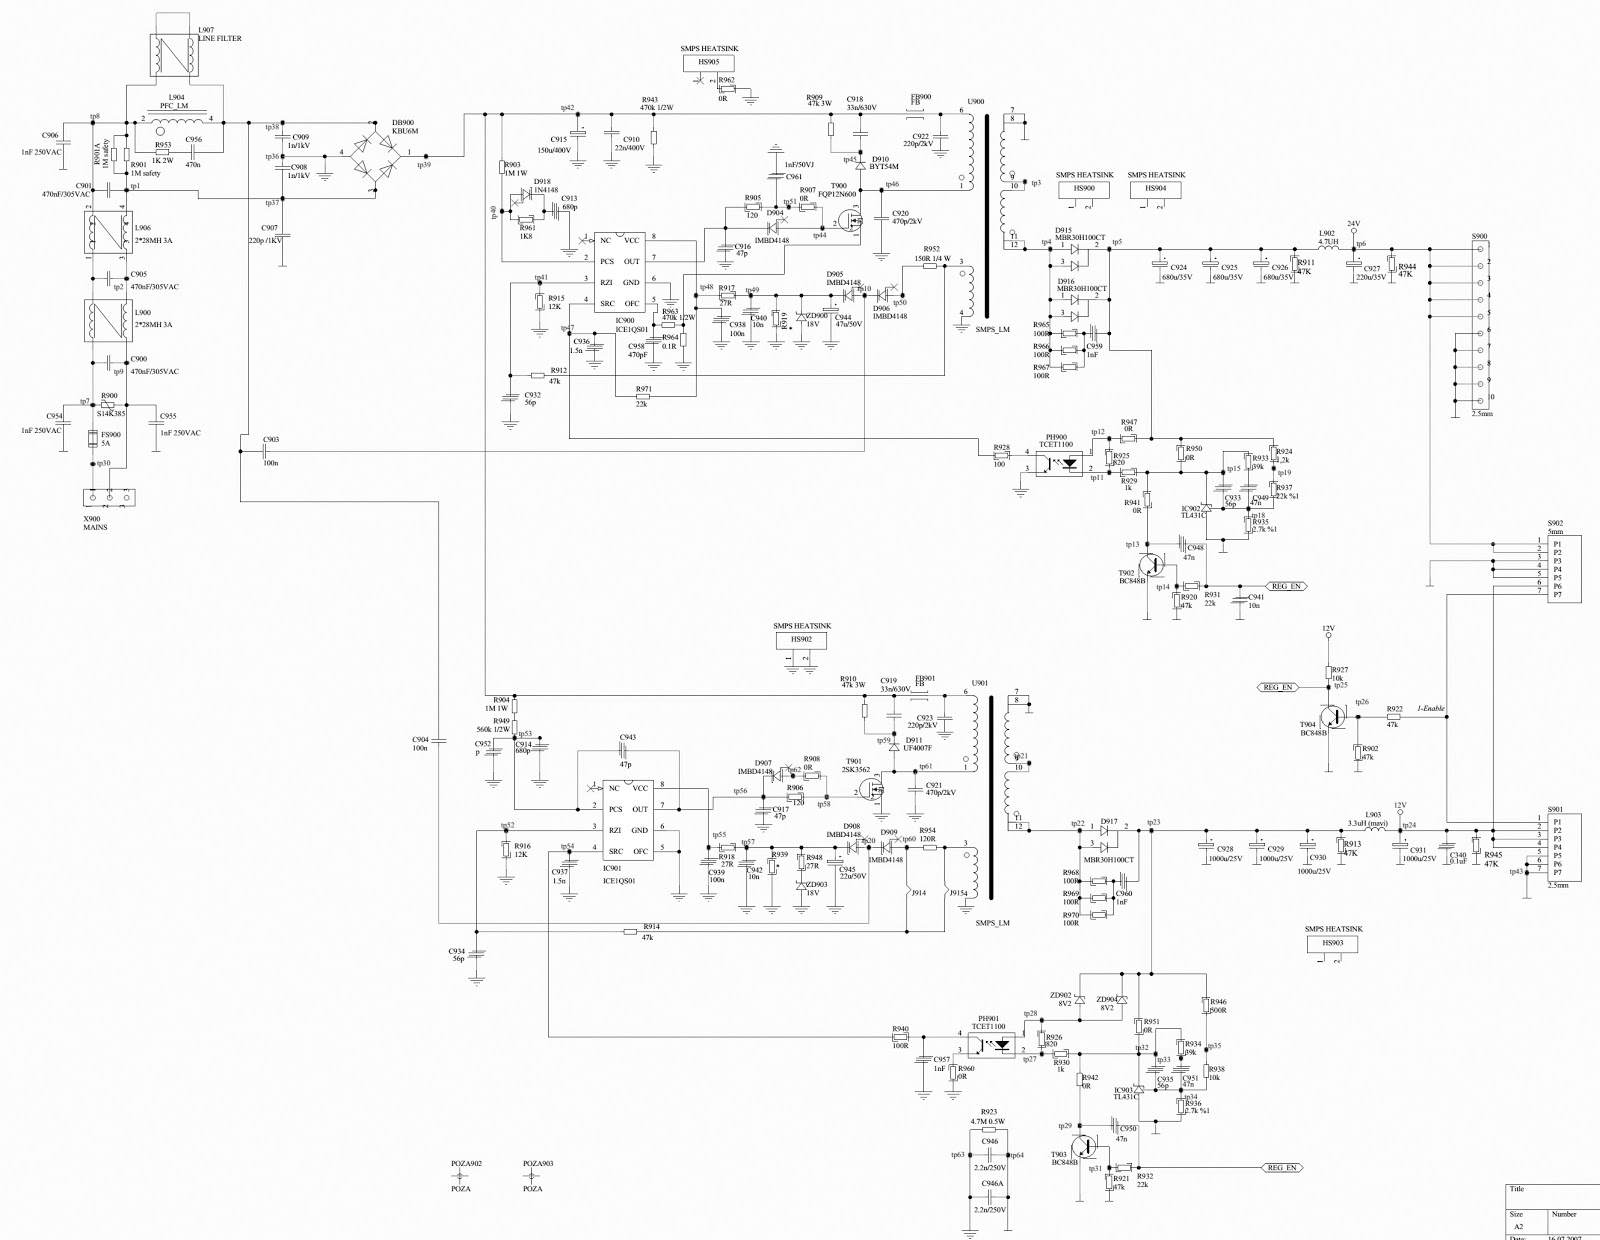 Beko Electric Wiring Diagram Diagrams Multiple Outlets Z1j194 11 And Dynex Lc22hv40 Smps Circuit Basic Electrical Light